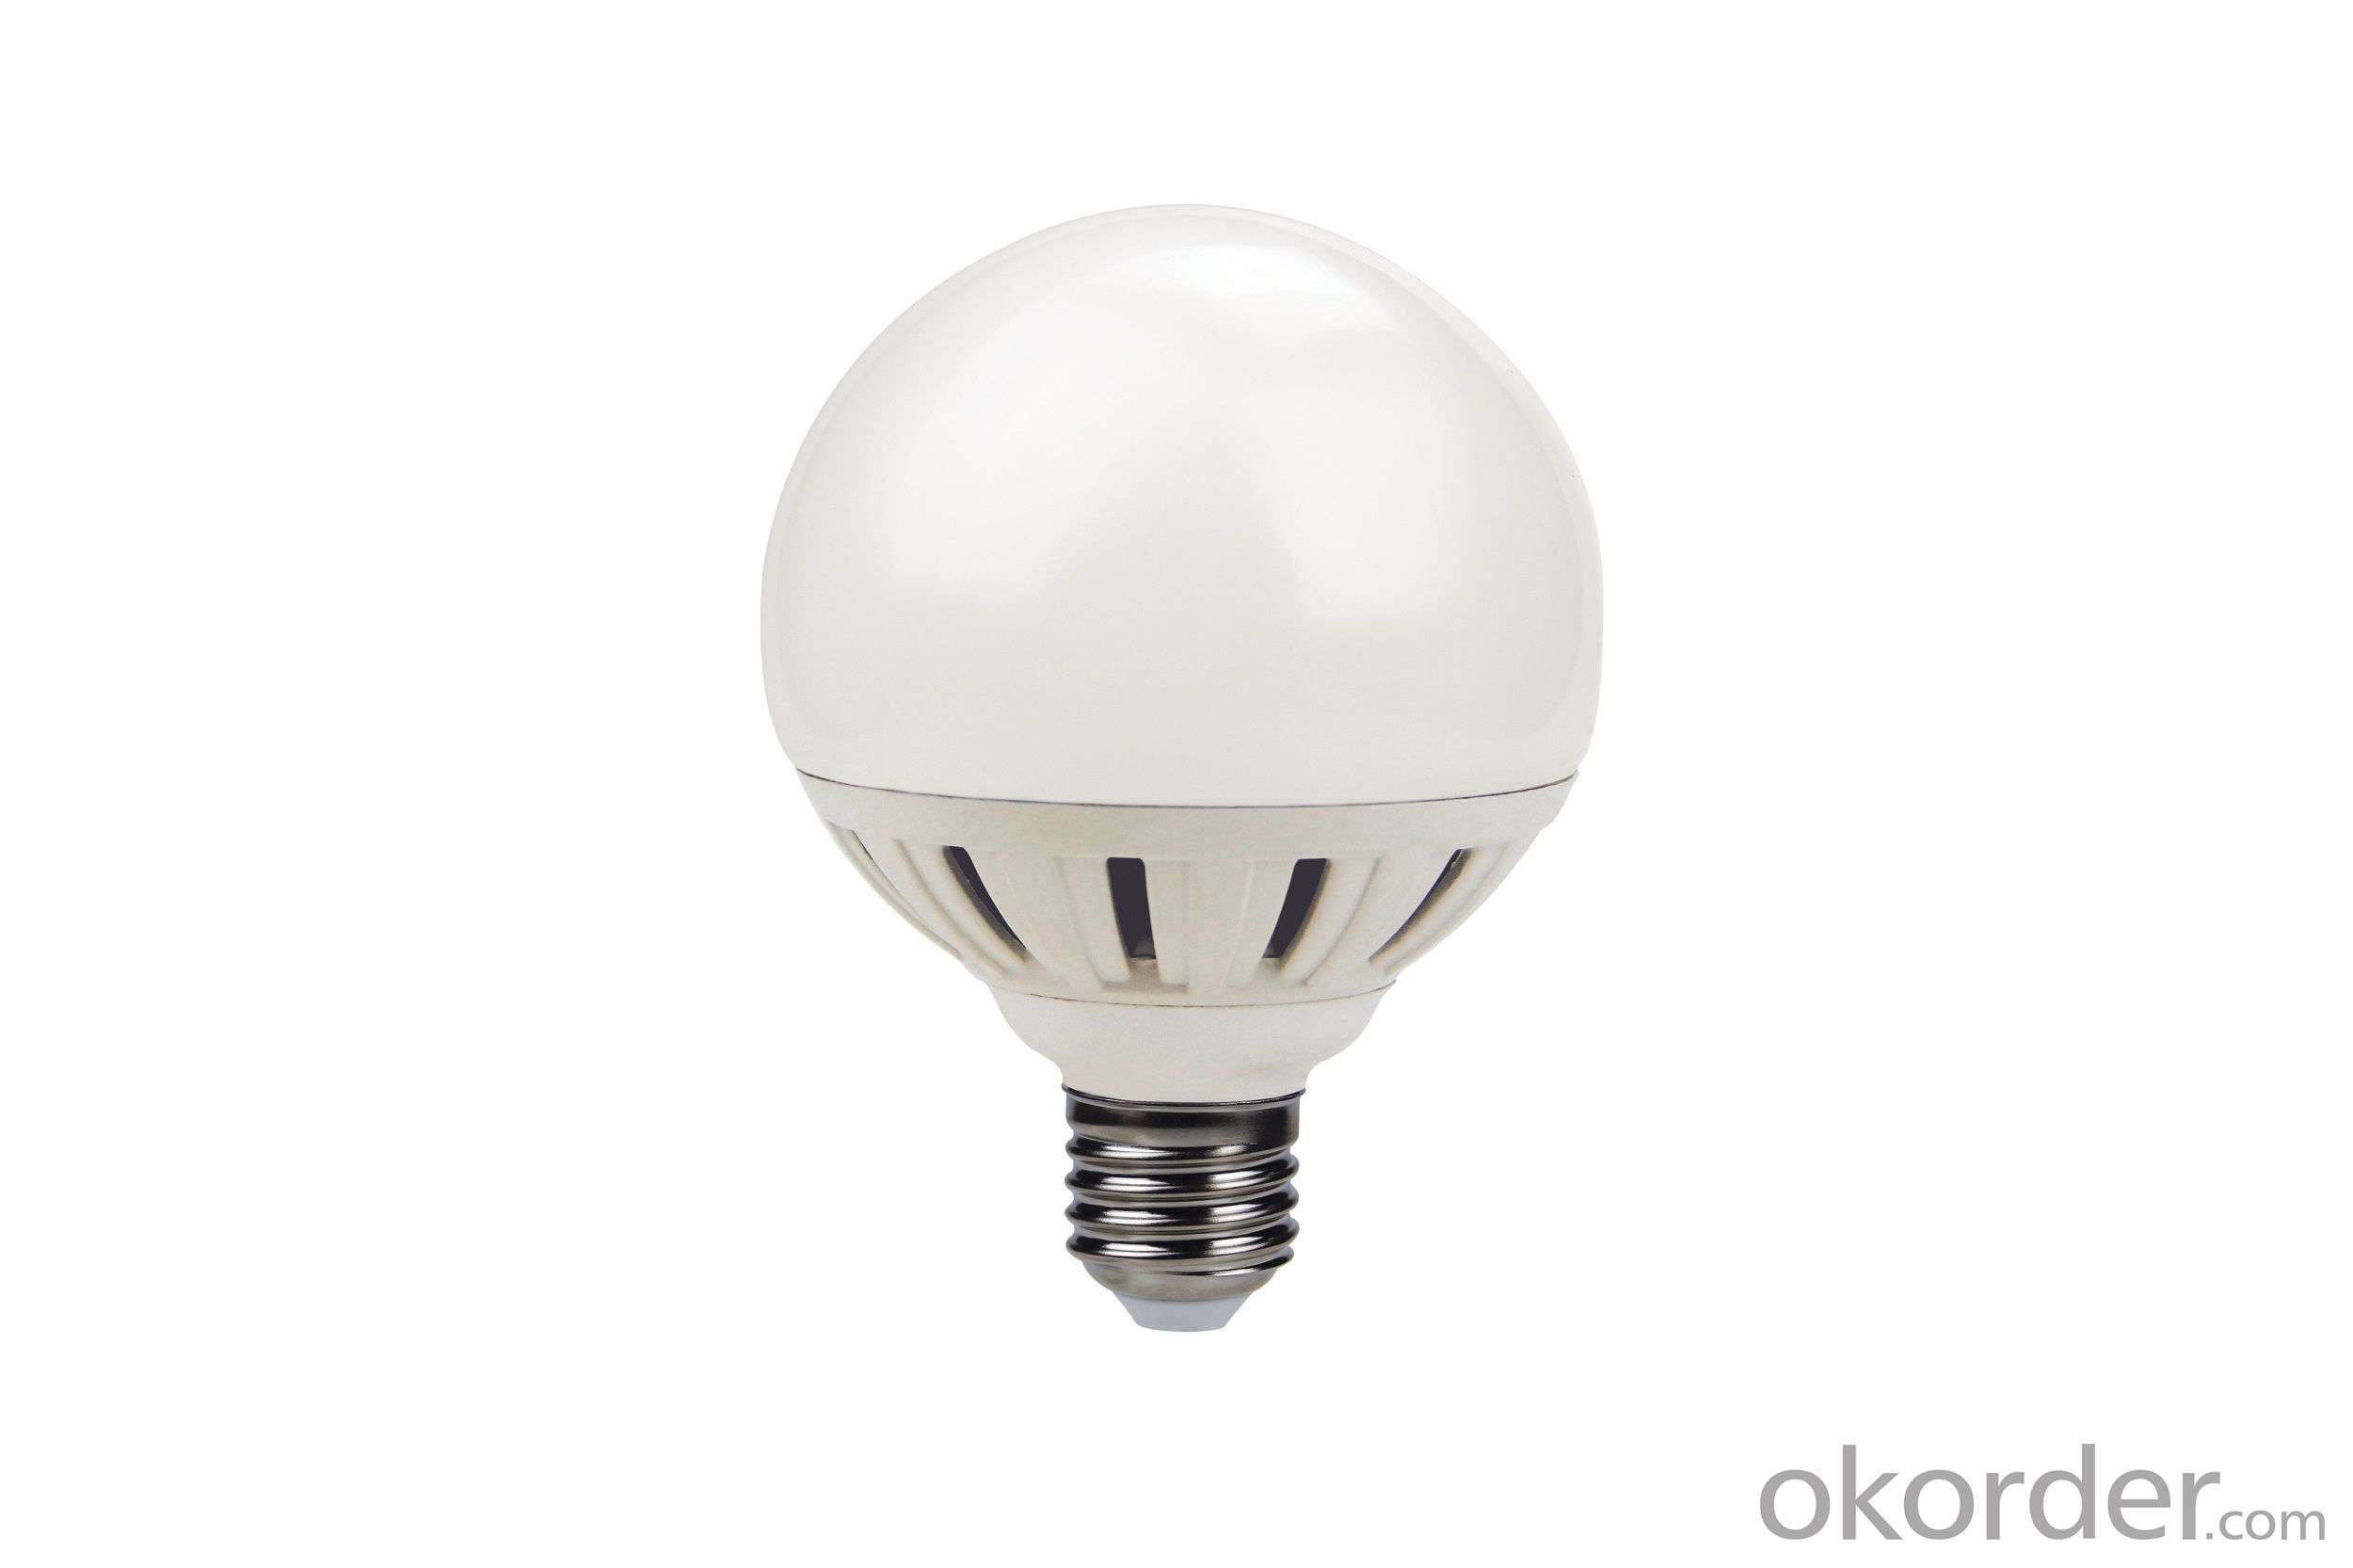 LED Bulb Light E27 3000k-4000K-5000K-6500k G95 9W 800 Lumen Non Dimmable